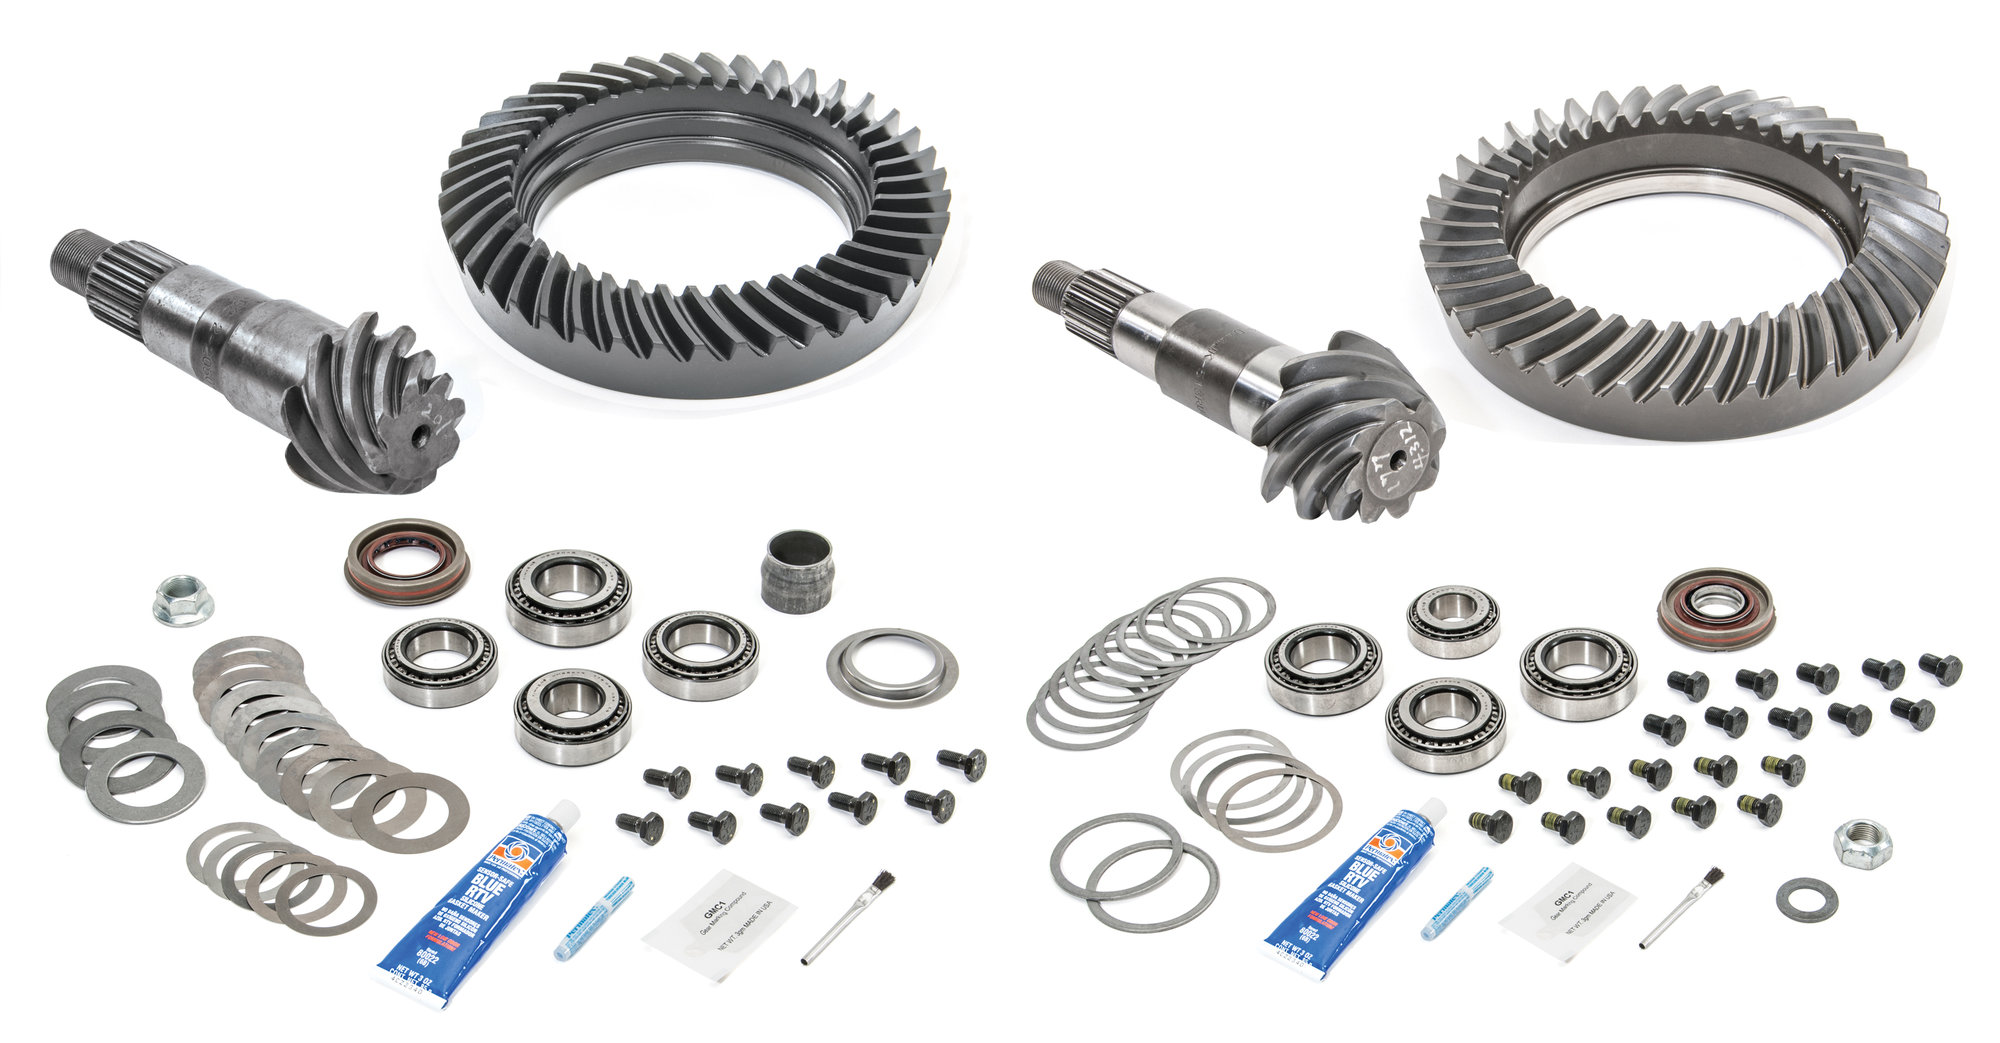 G2 Axle Amp Gear Front And Rear Ring And Pinion With Master Install Kits For 96 99 Jeep Cherokee